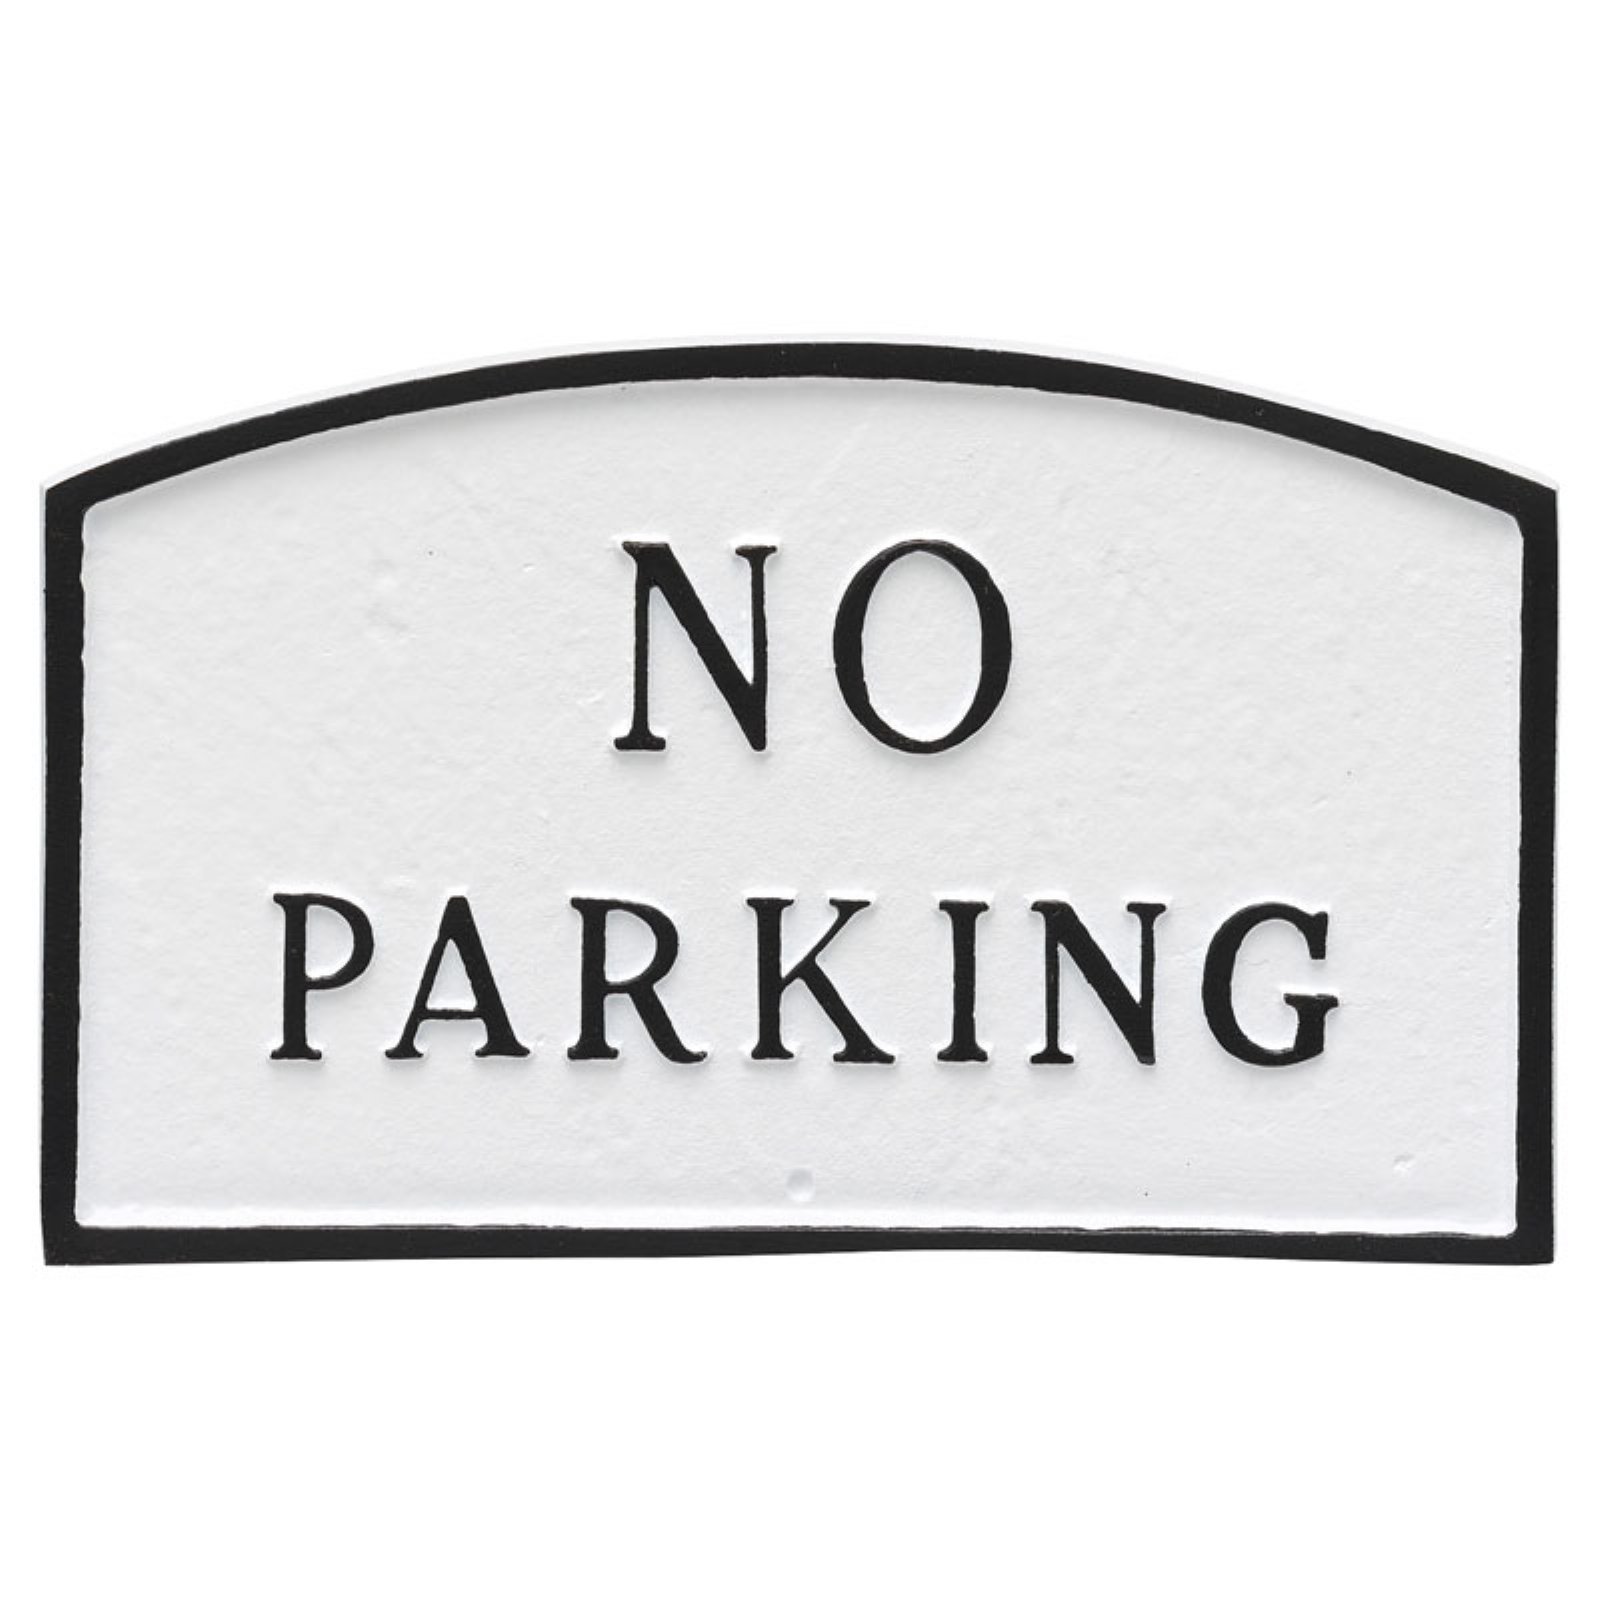 Montague Metal Products No Parking Arched Wall Plaque by Montague Metal Products Inc